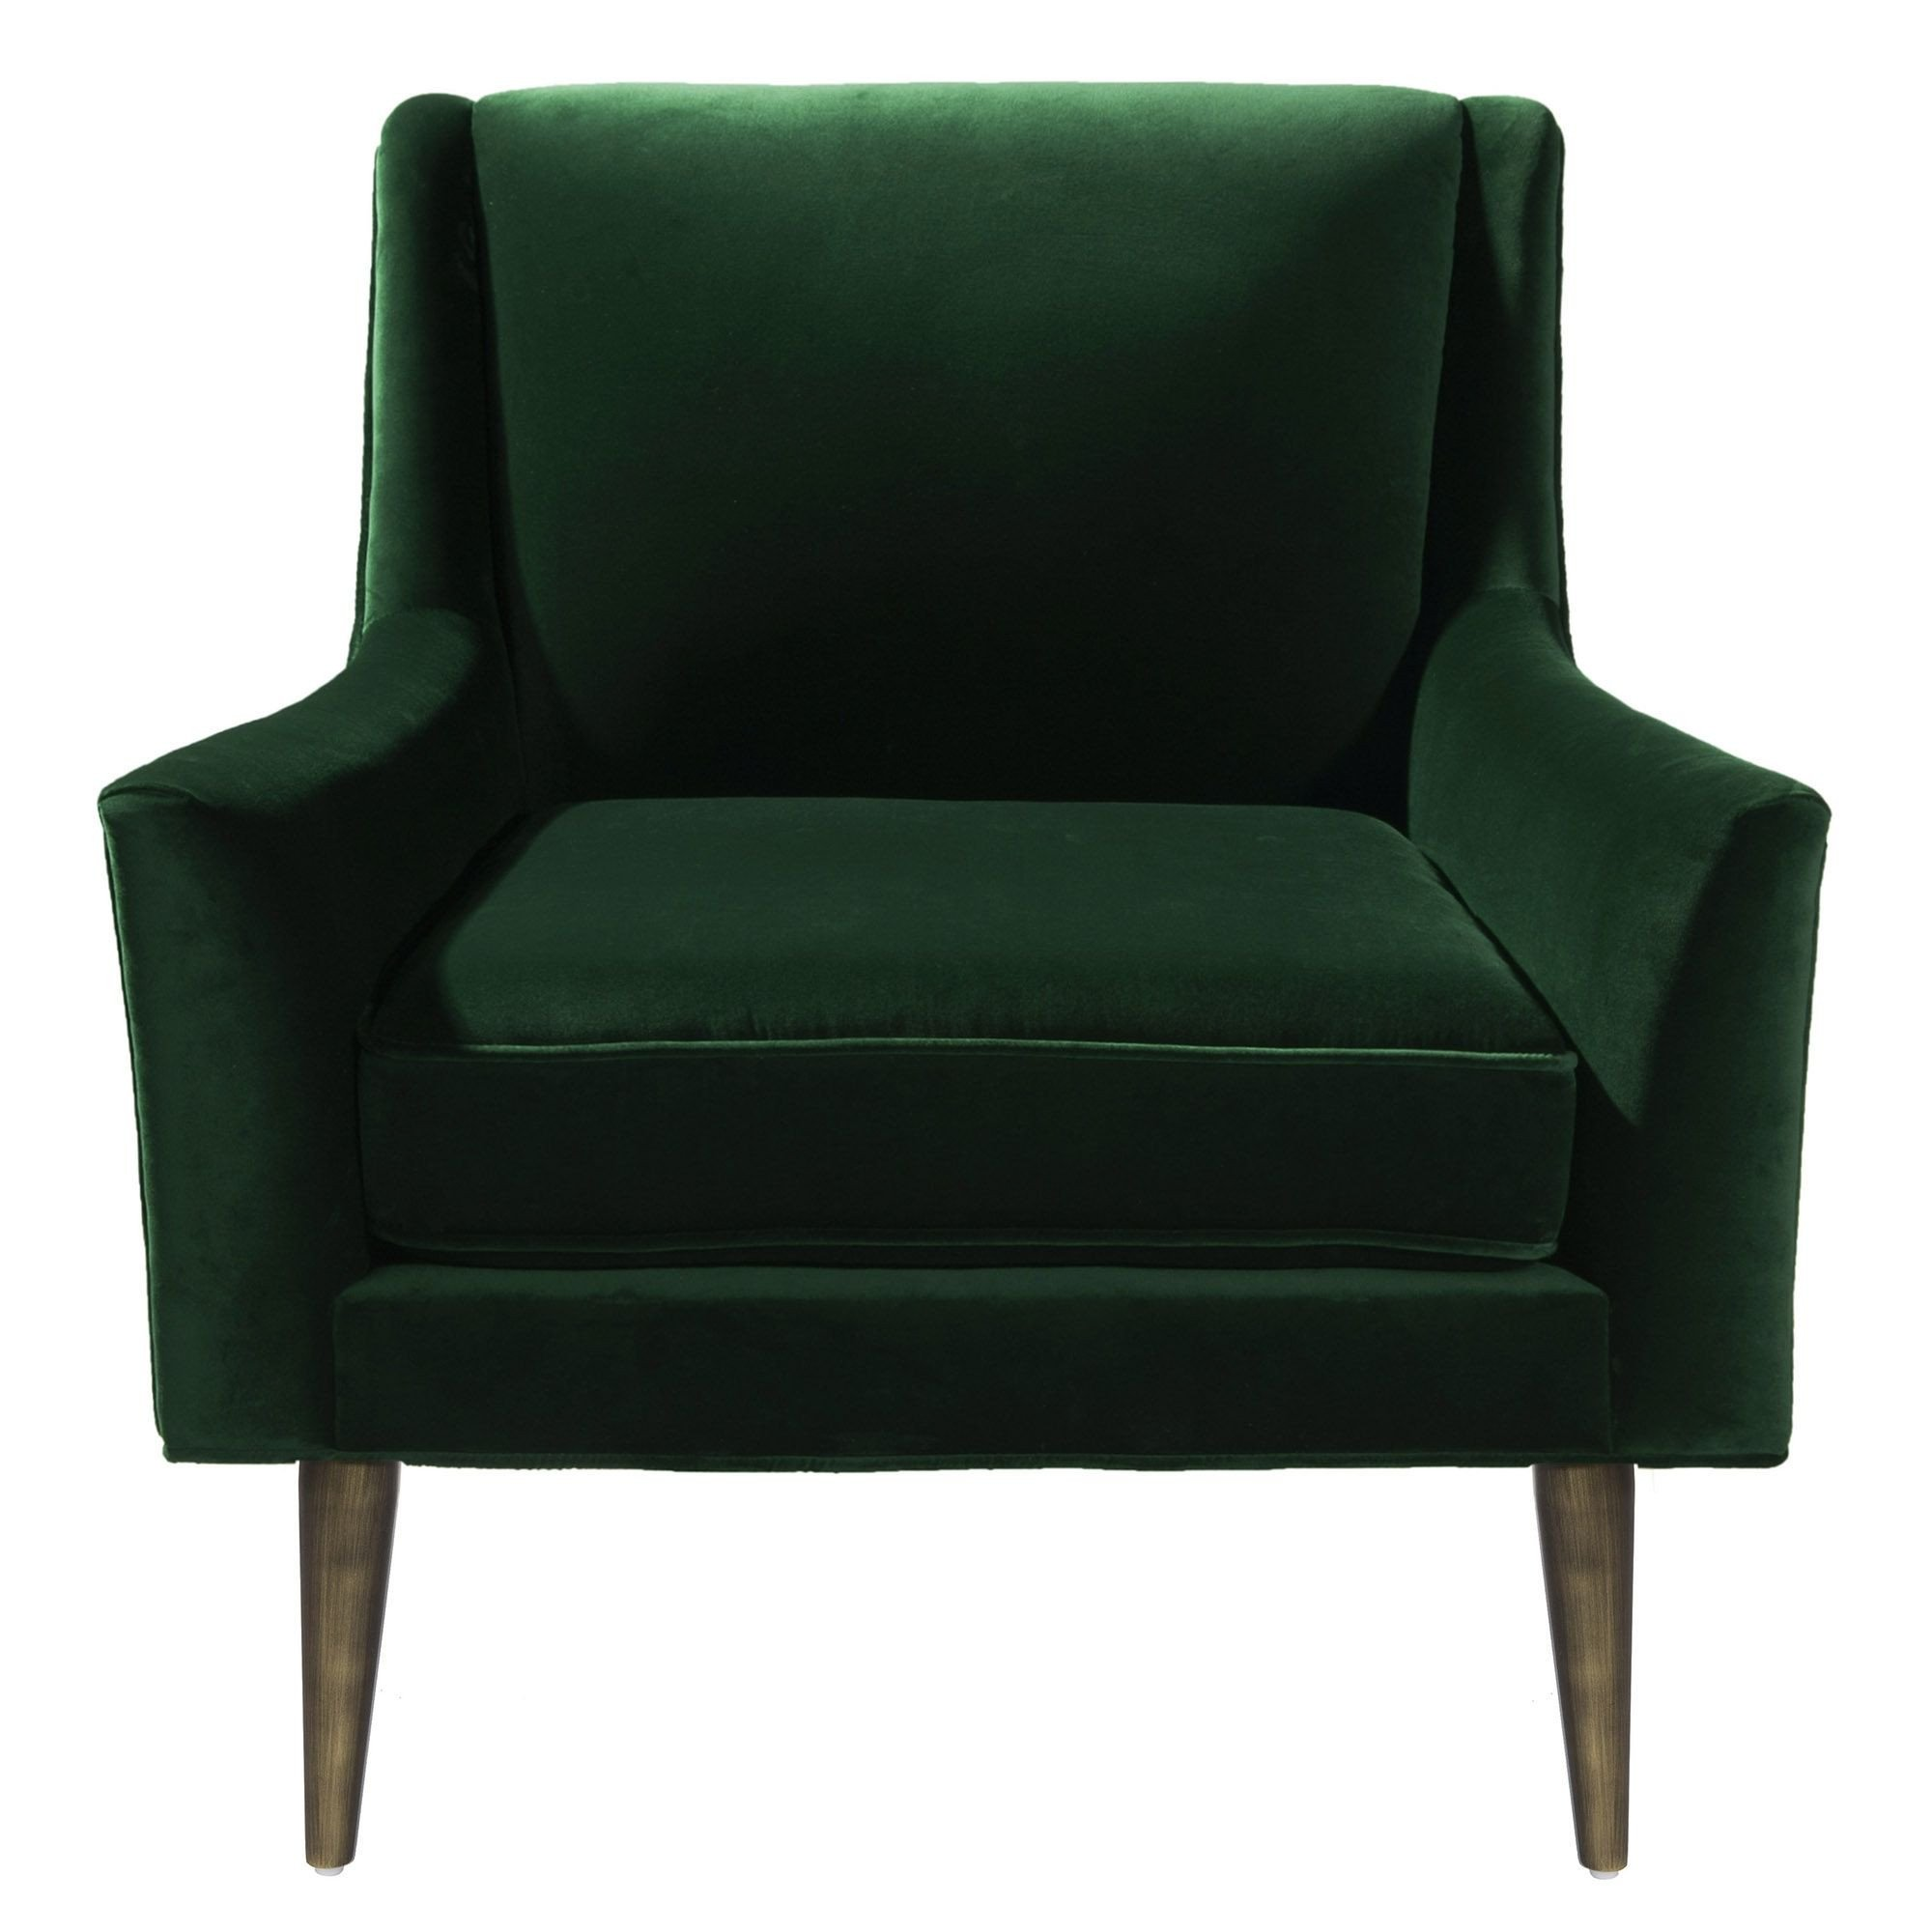 Bedroom Chairs for Sale Elegant Worlds Away Wrenn Chair Green In 2019 Products